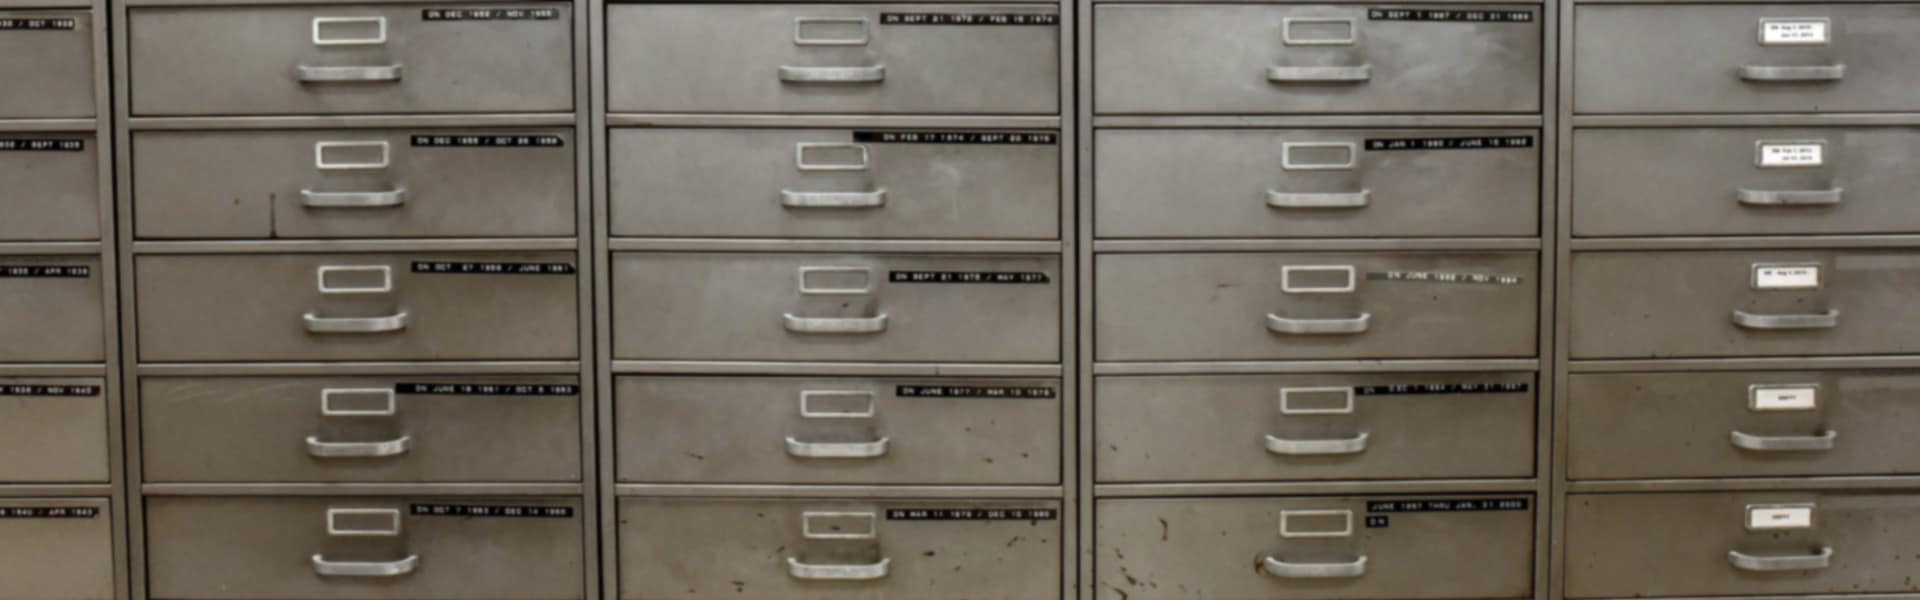 file cabinets astra fertility